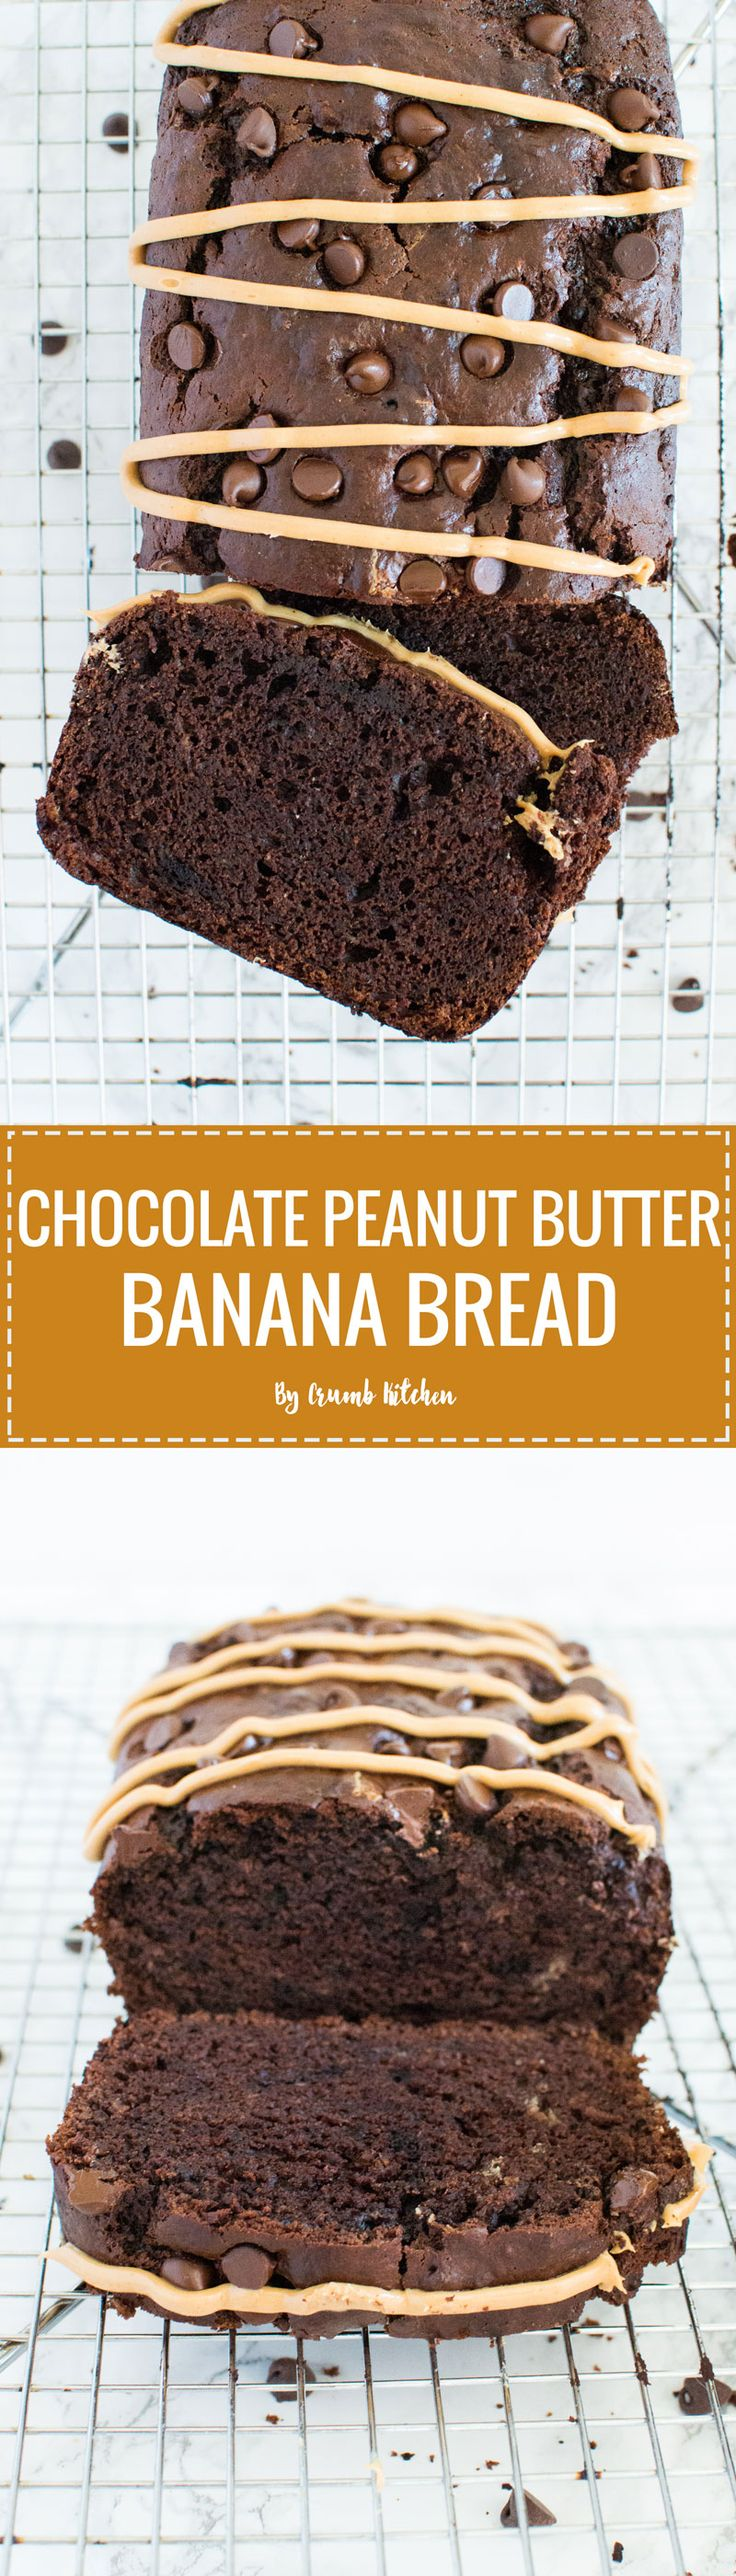 Pure cocoa and just-melted peanut butter turn typical banana bread into this indulgent, cake-like Chocolate Peanut Butter Banana Bread. | crumbkitchen.com